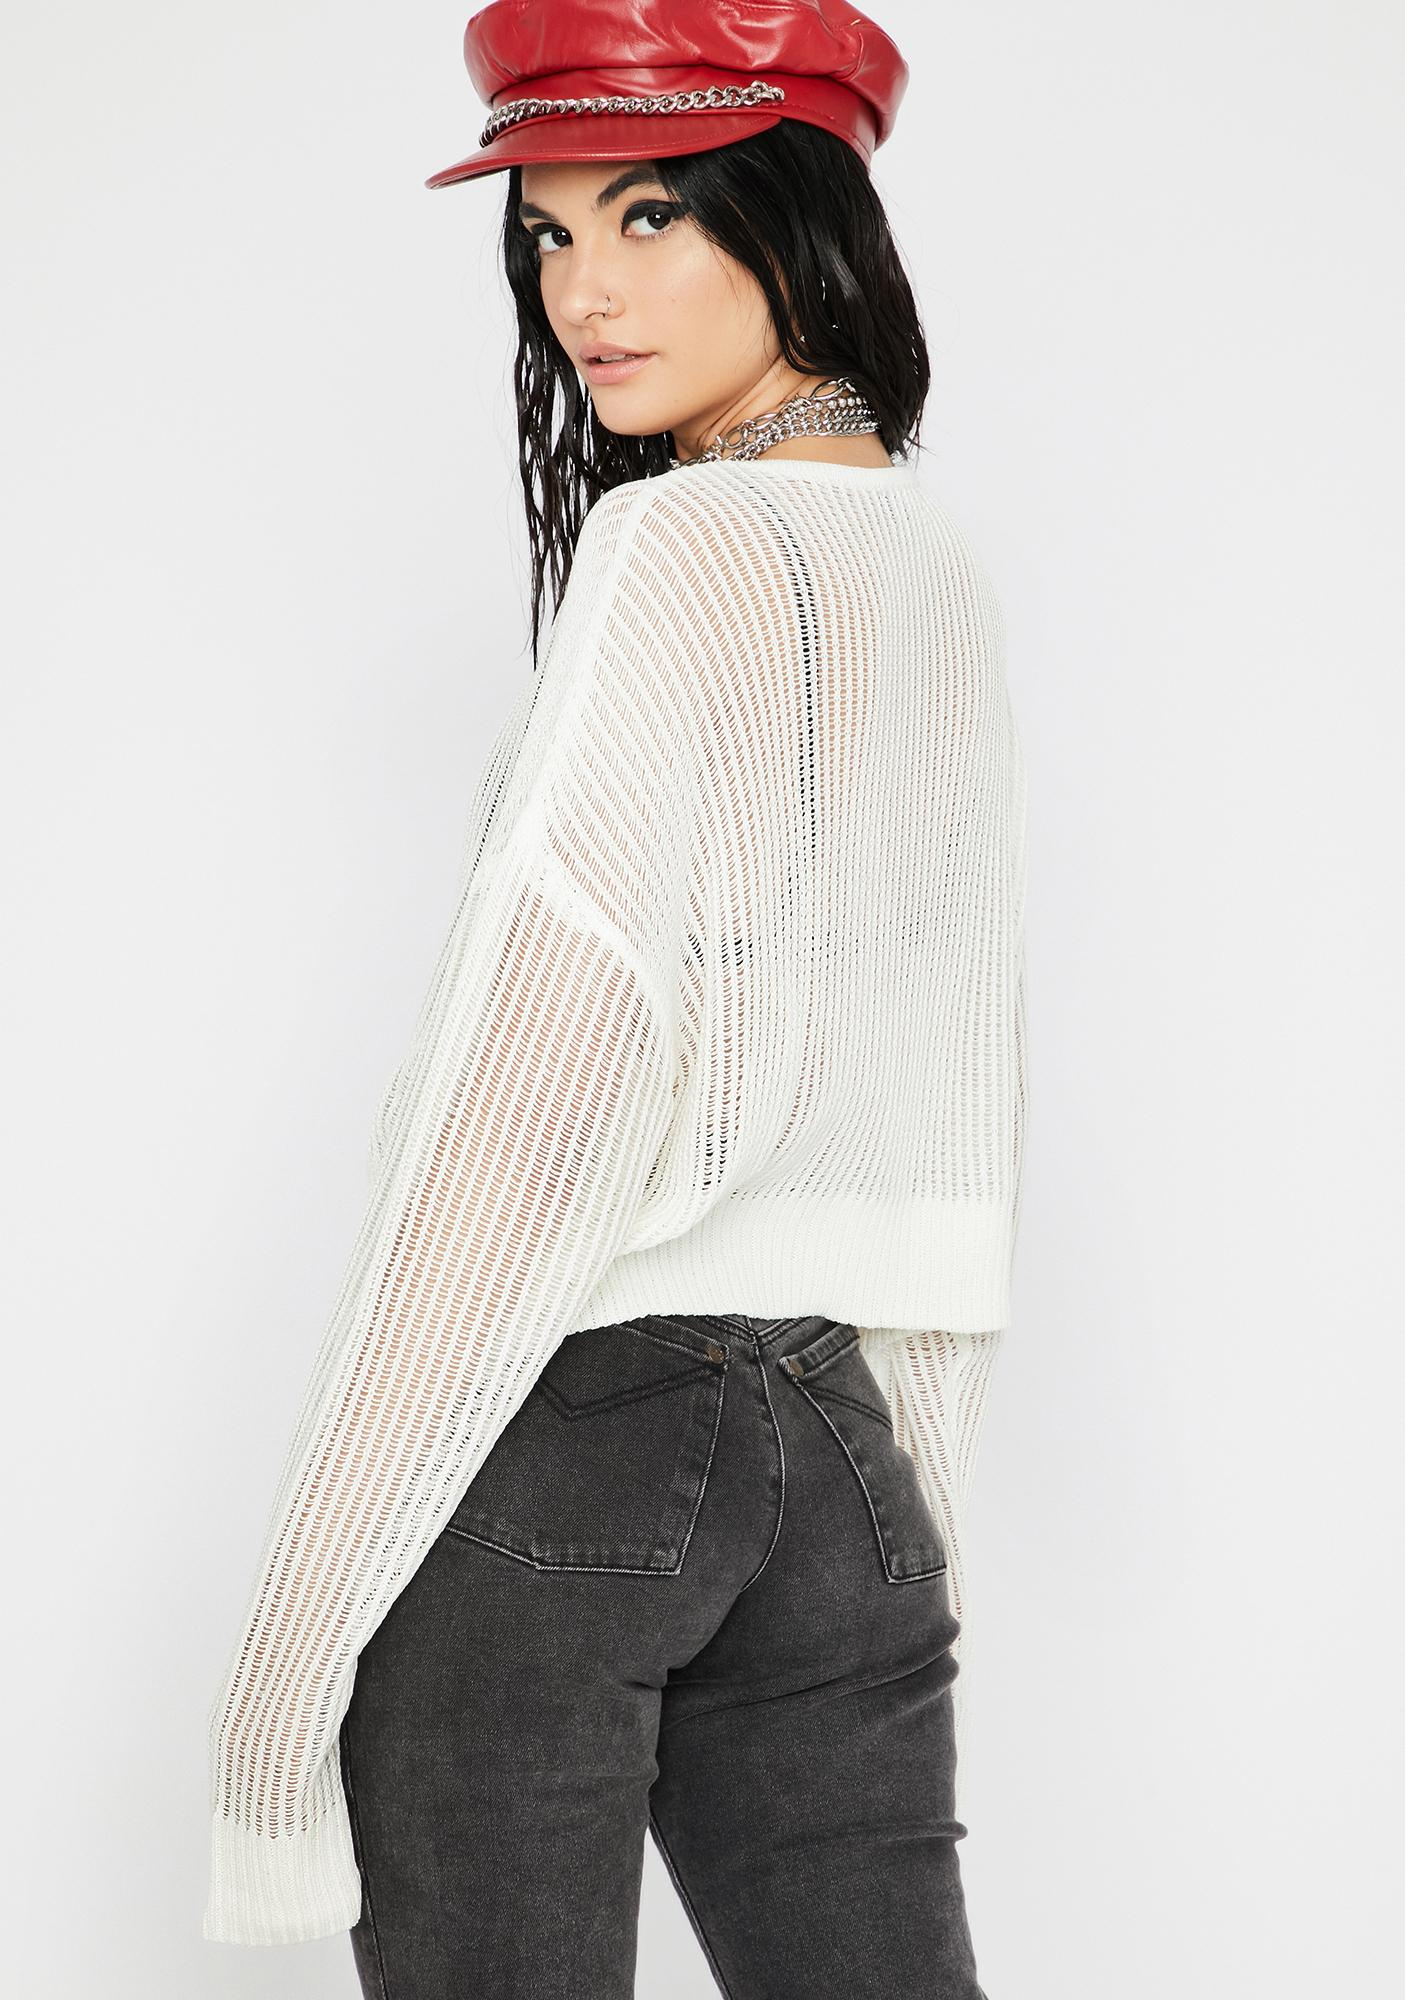 Purely Do Or Dare Sheer Sweater